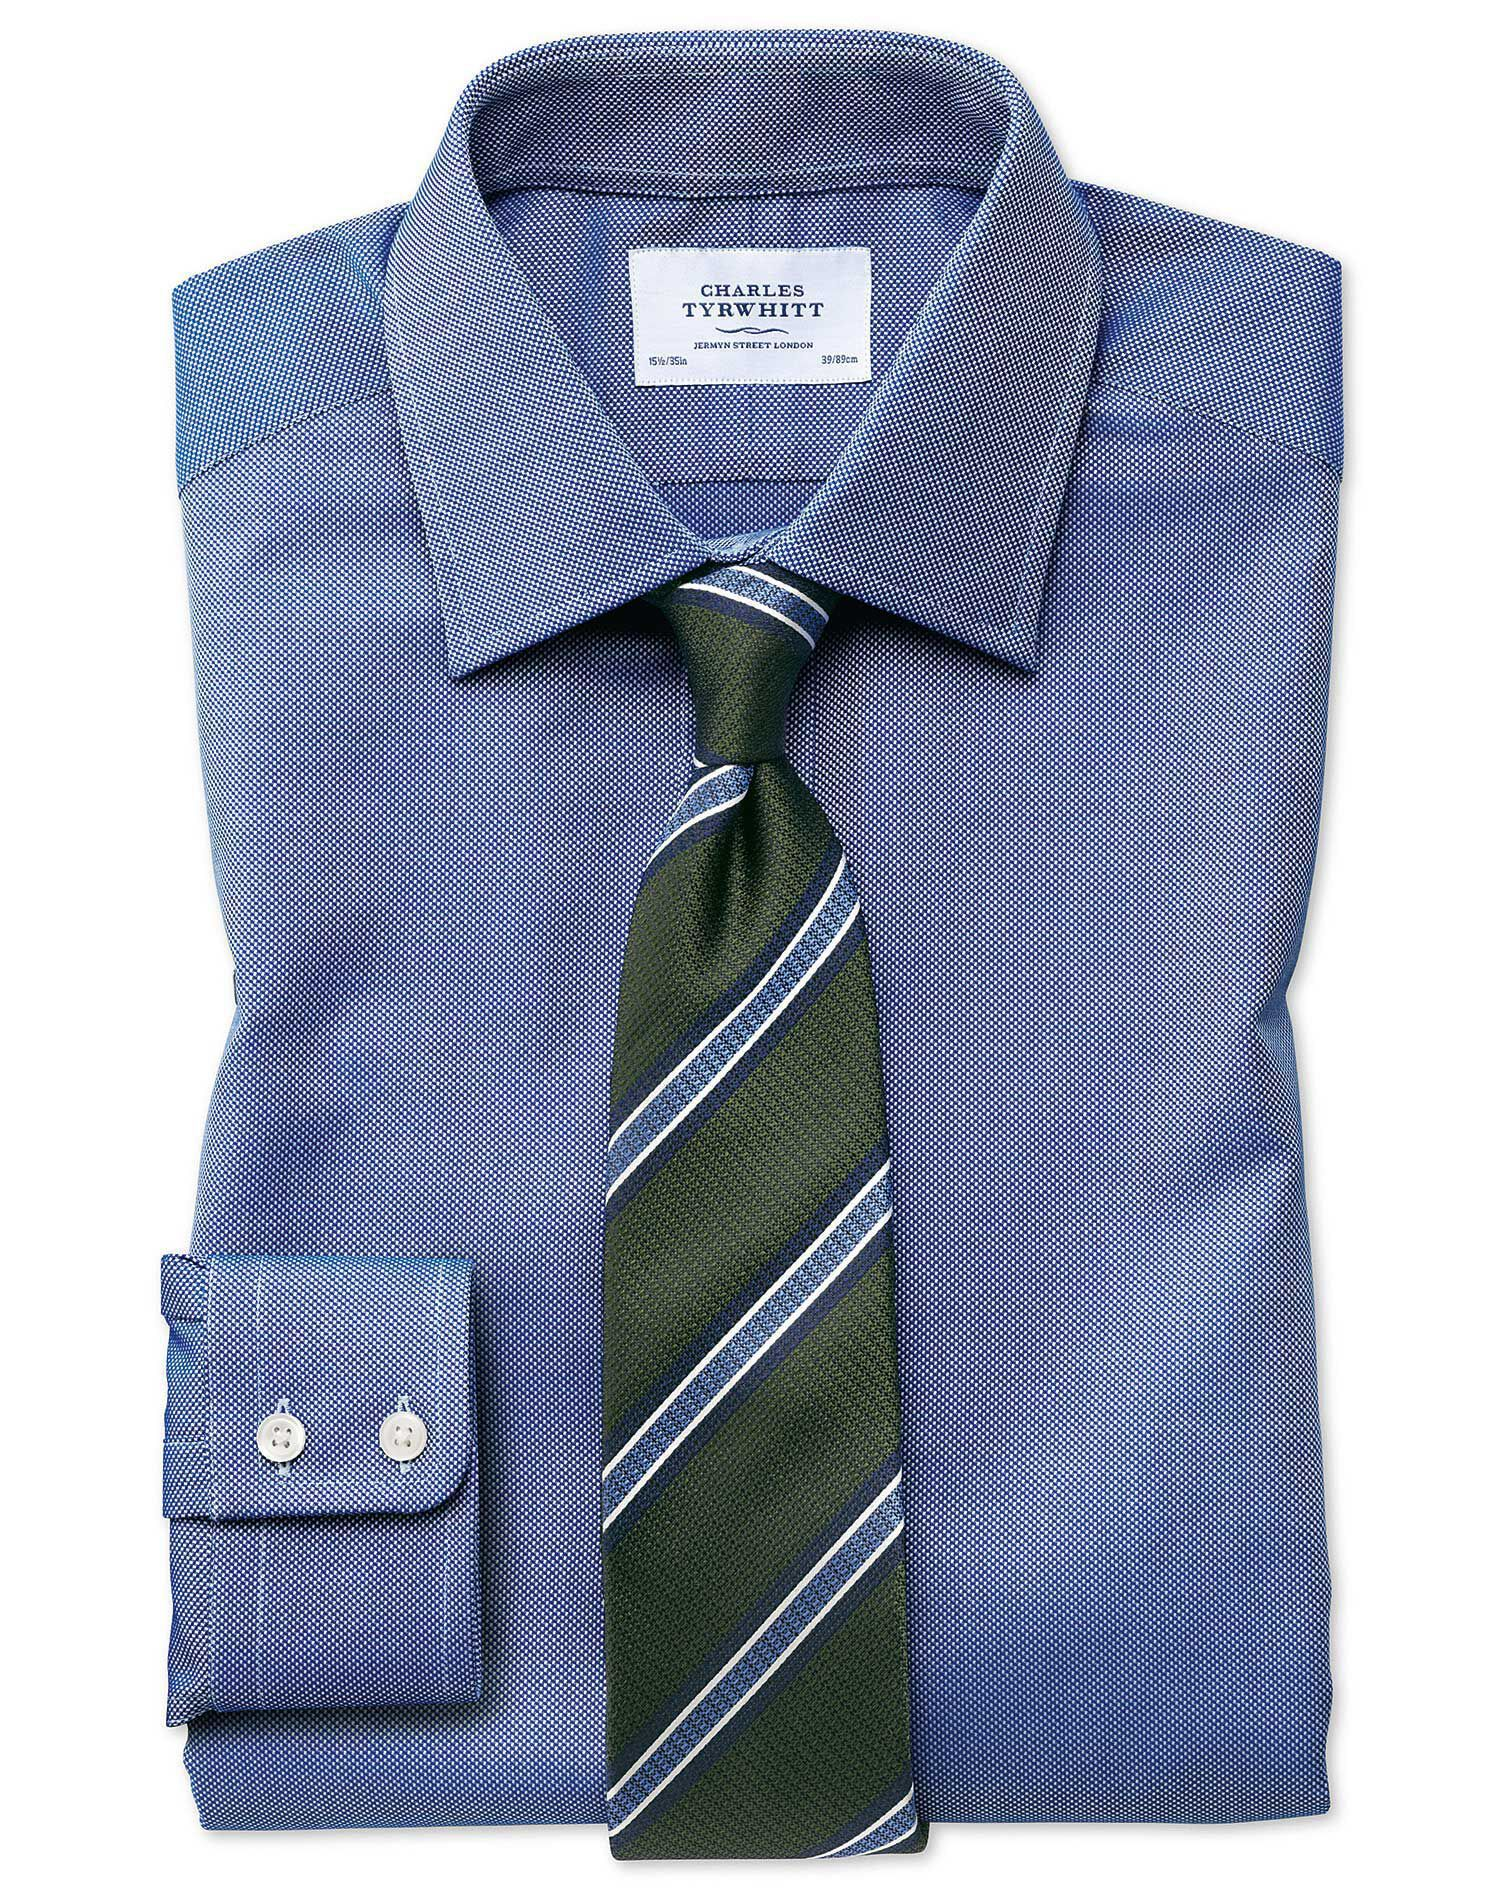 Extra Slim Fit Egyptian Cotton Royal Oxford Royal Blue Formal Shirt Single Cuff Size 17.5/35 by Char